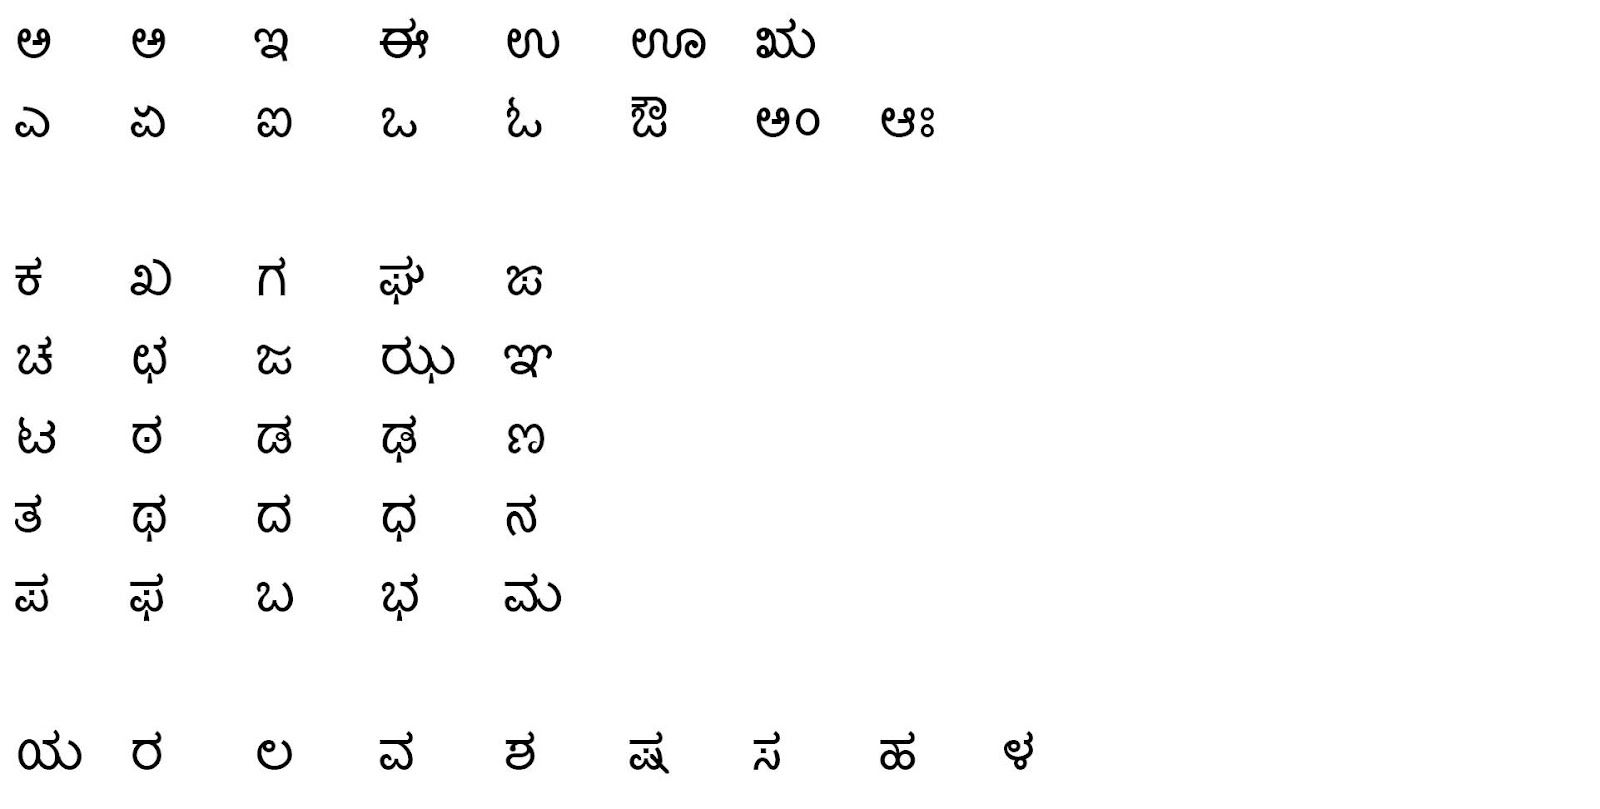 Rigorous Kannada Alphabets Chart With Pictures Gujarati